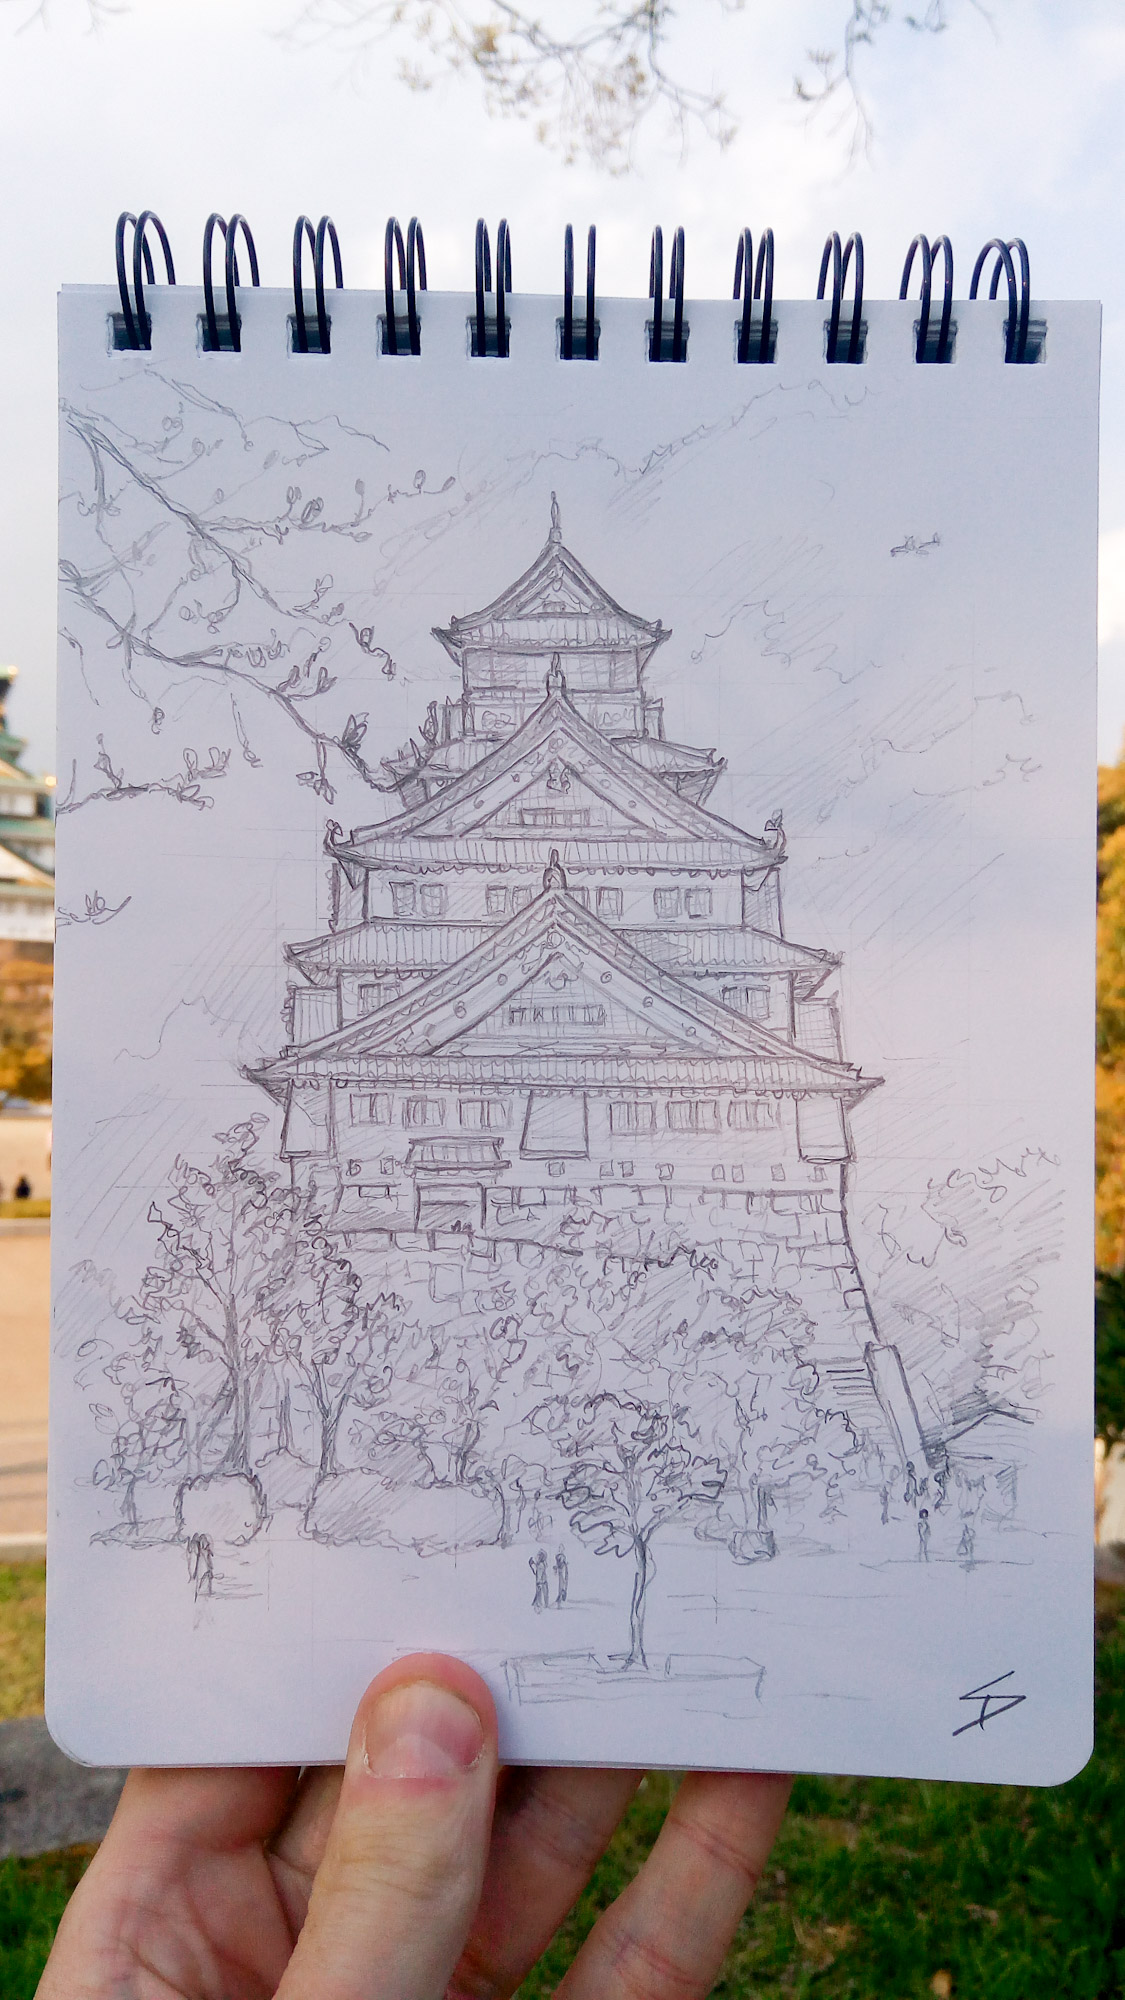 Urban photo art - Chuo Ward, Osaka, Japan. 'Osaka Castle.' The castle has stared in film and television - 'Godzilla Raids Again,''Shogun' and the James Bond film 'You only live twice.' sketchbookexplorer.com @davidasutton @sketchbookexplorer Facebook.com/davidanthonysutton #japan #osaka #chuoward #osakacastle #travel #travelblog #photography #art #sketching #cheeryblossom #cherryblossomseason